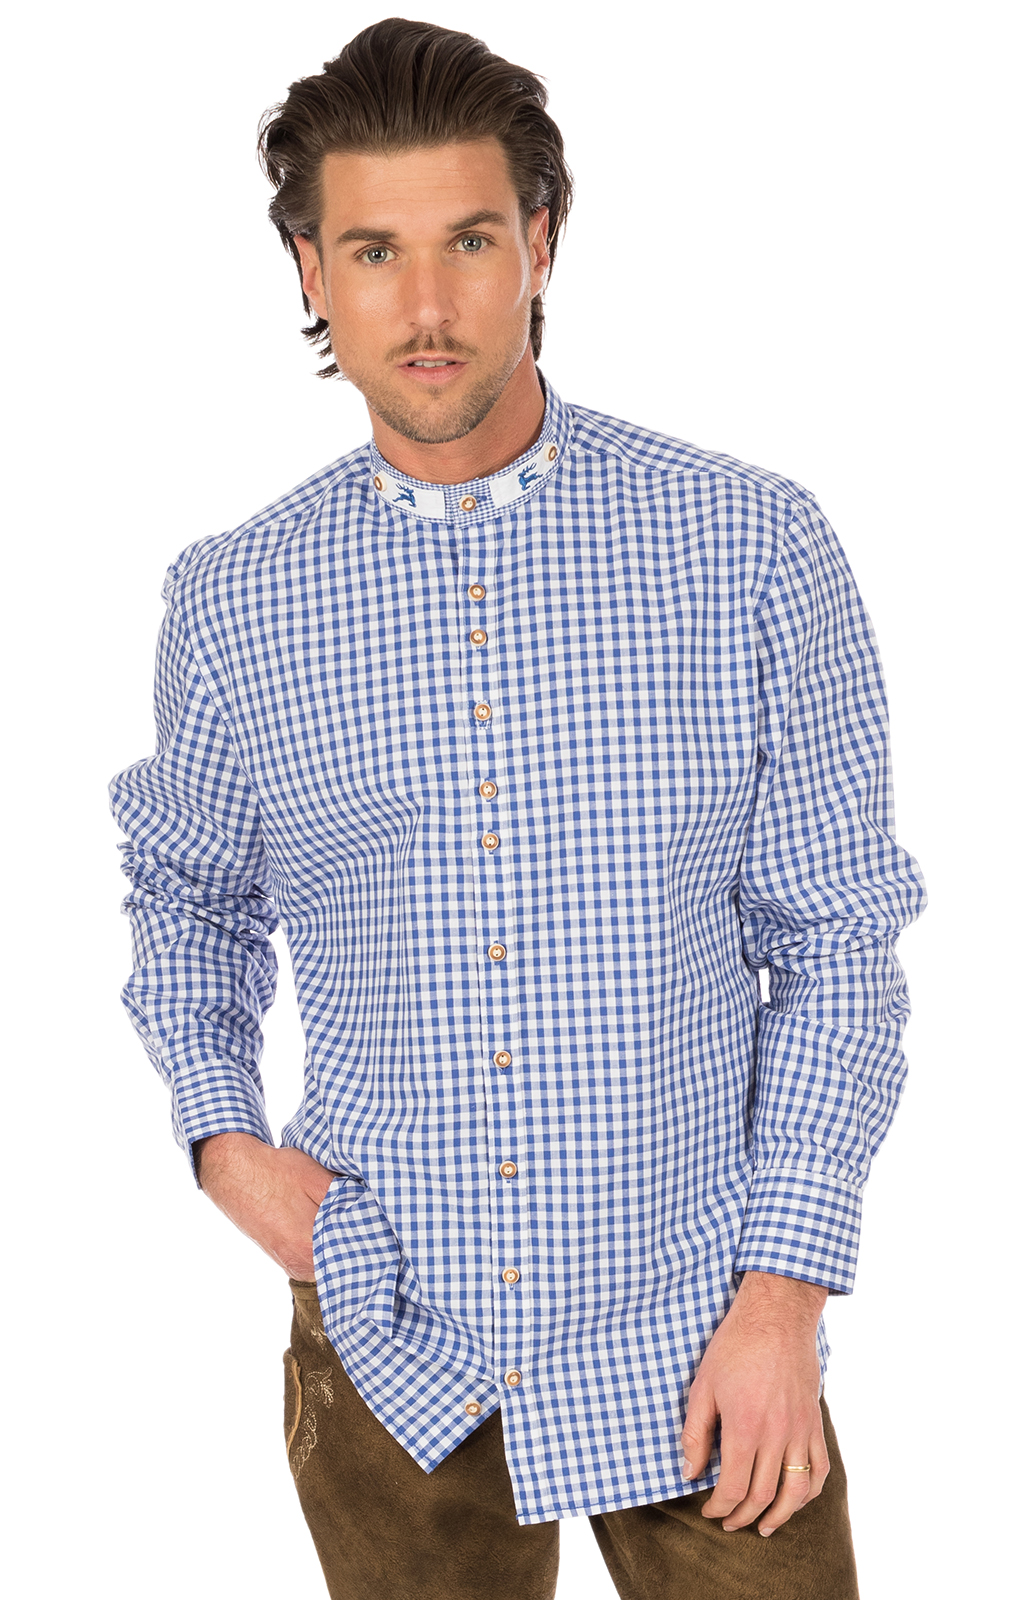 German traditional shirt Pfoad blue von OS-Trachten